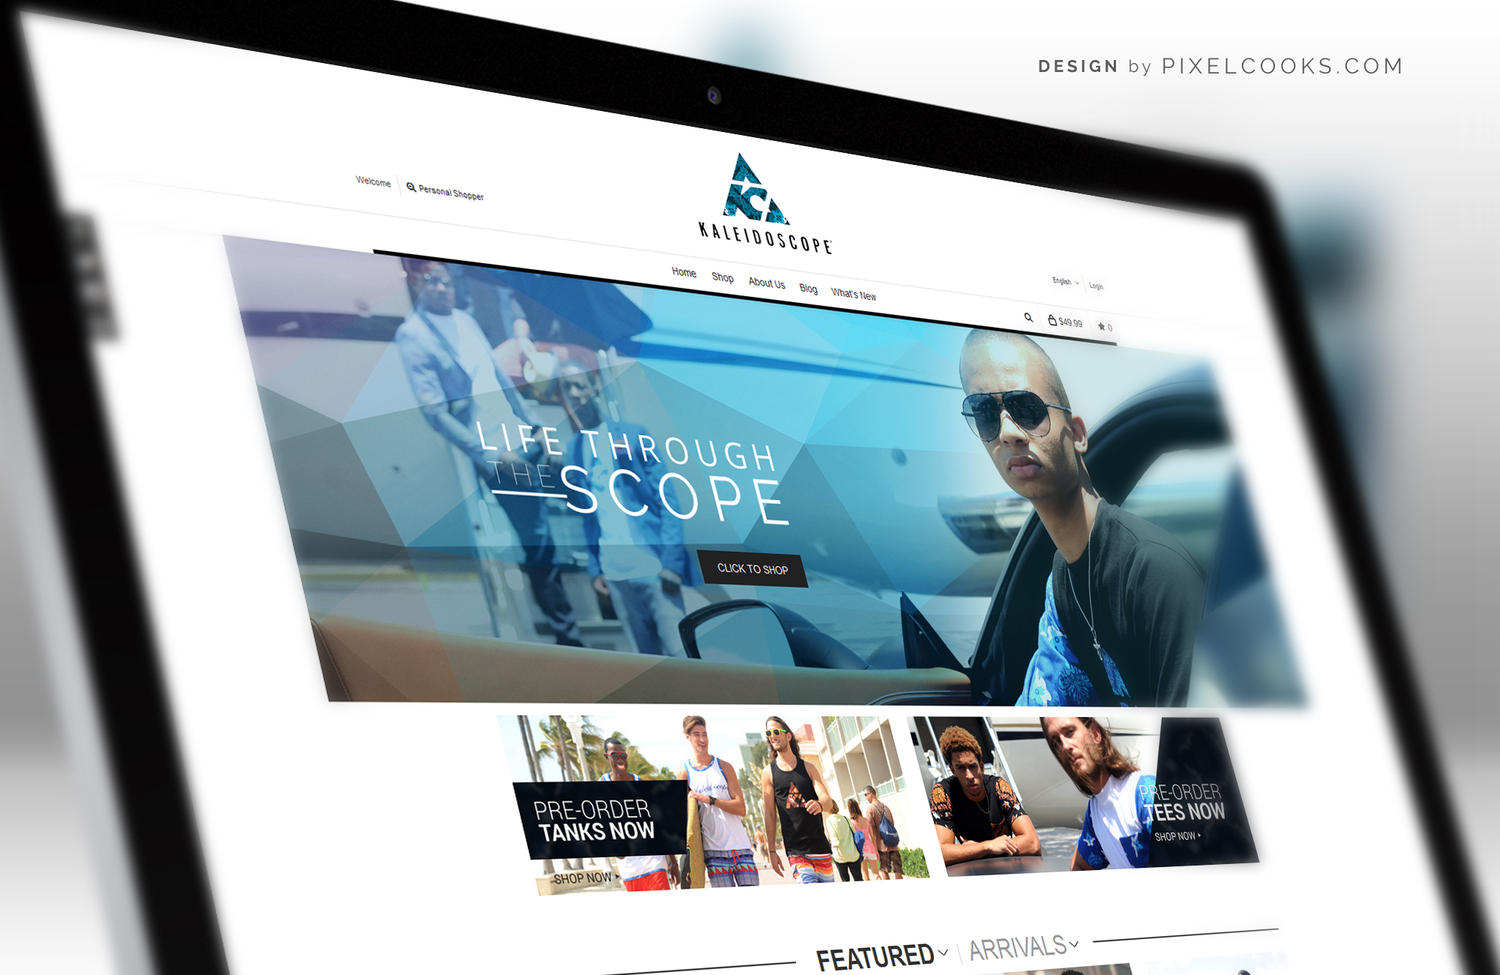 Express ThemeForest WordPress Theme Installation (+ Extra features, SEO) by savioragency - 54781